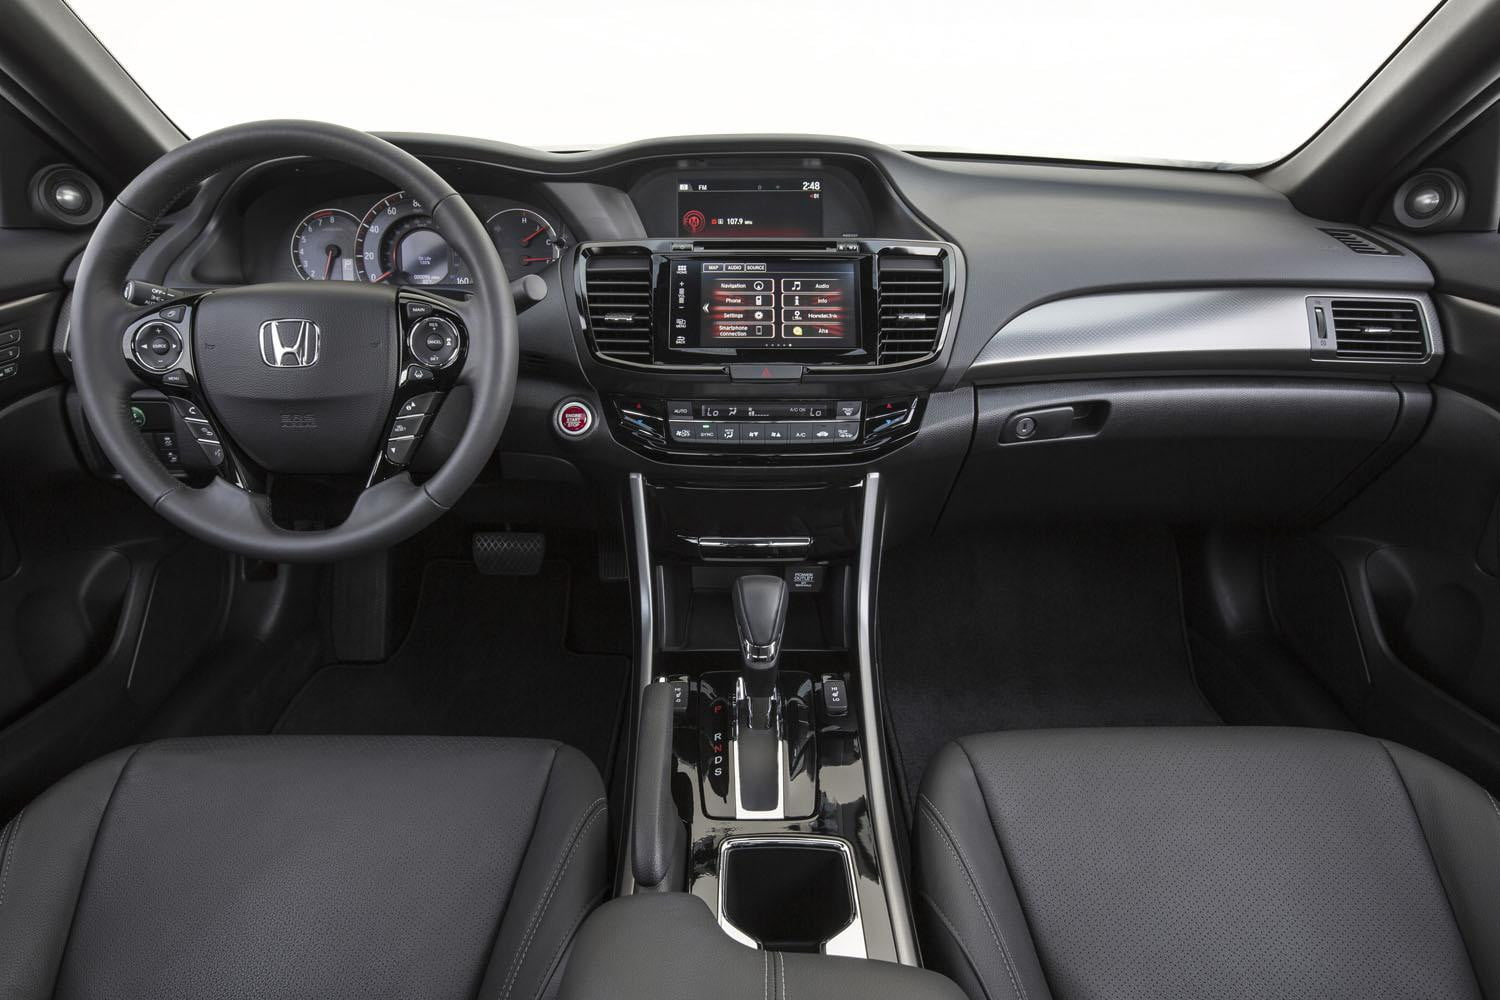 coupe sporty car test drive and reviews review accord does honda article photo with price